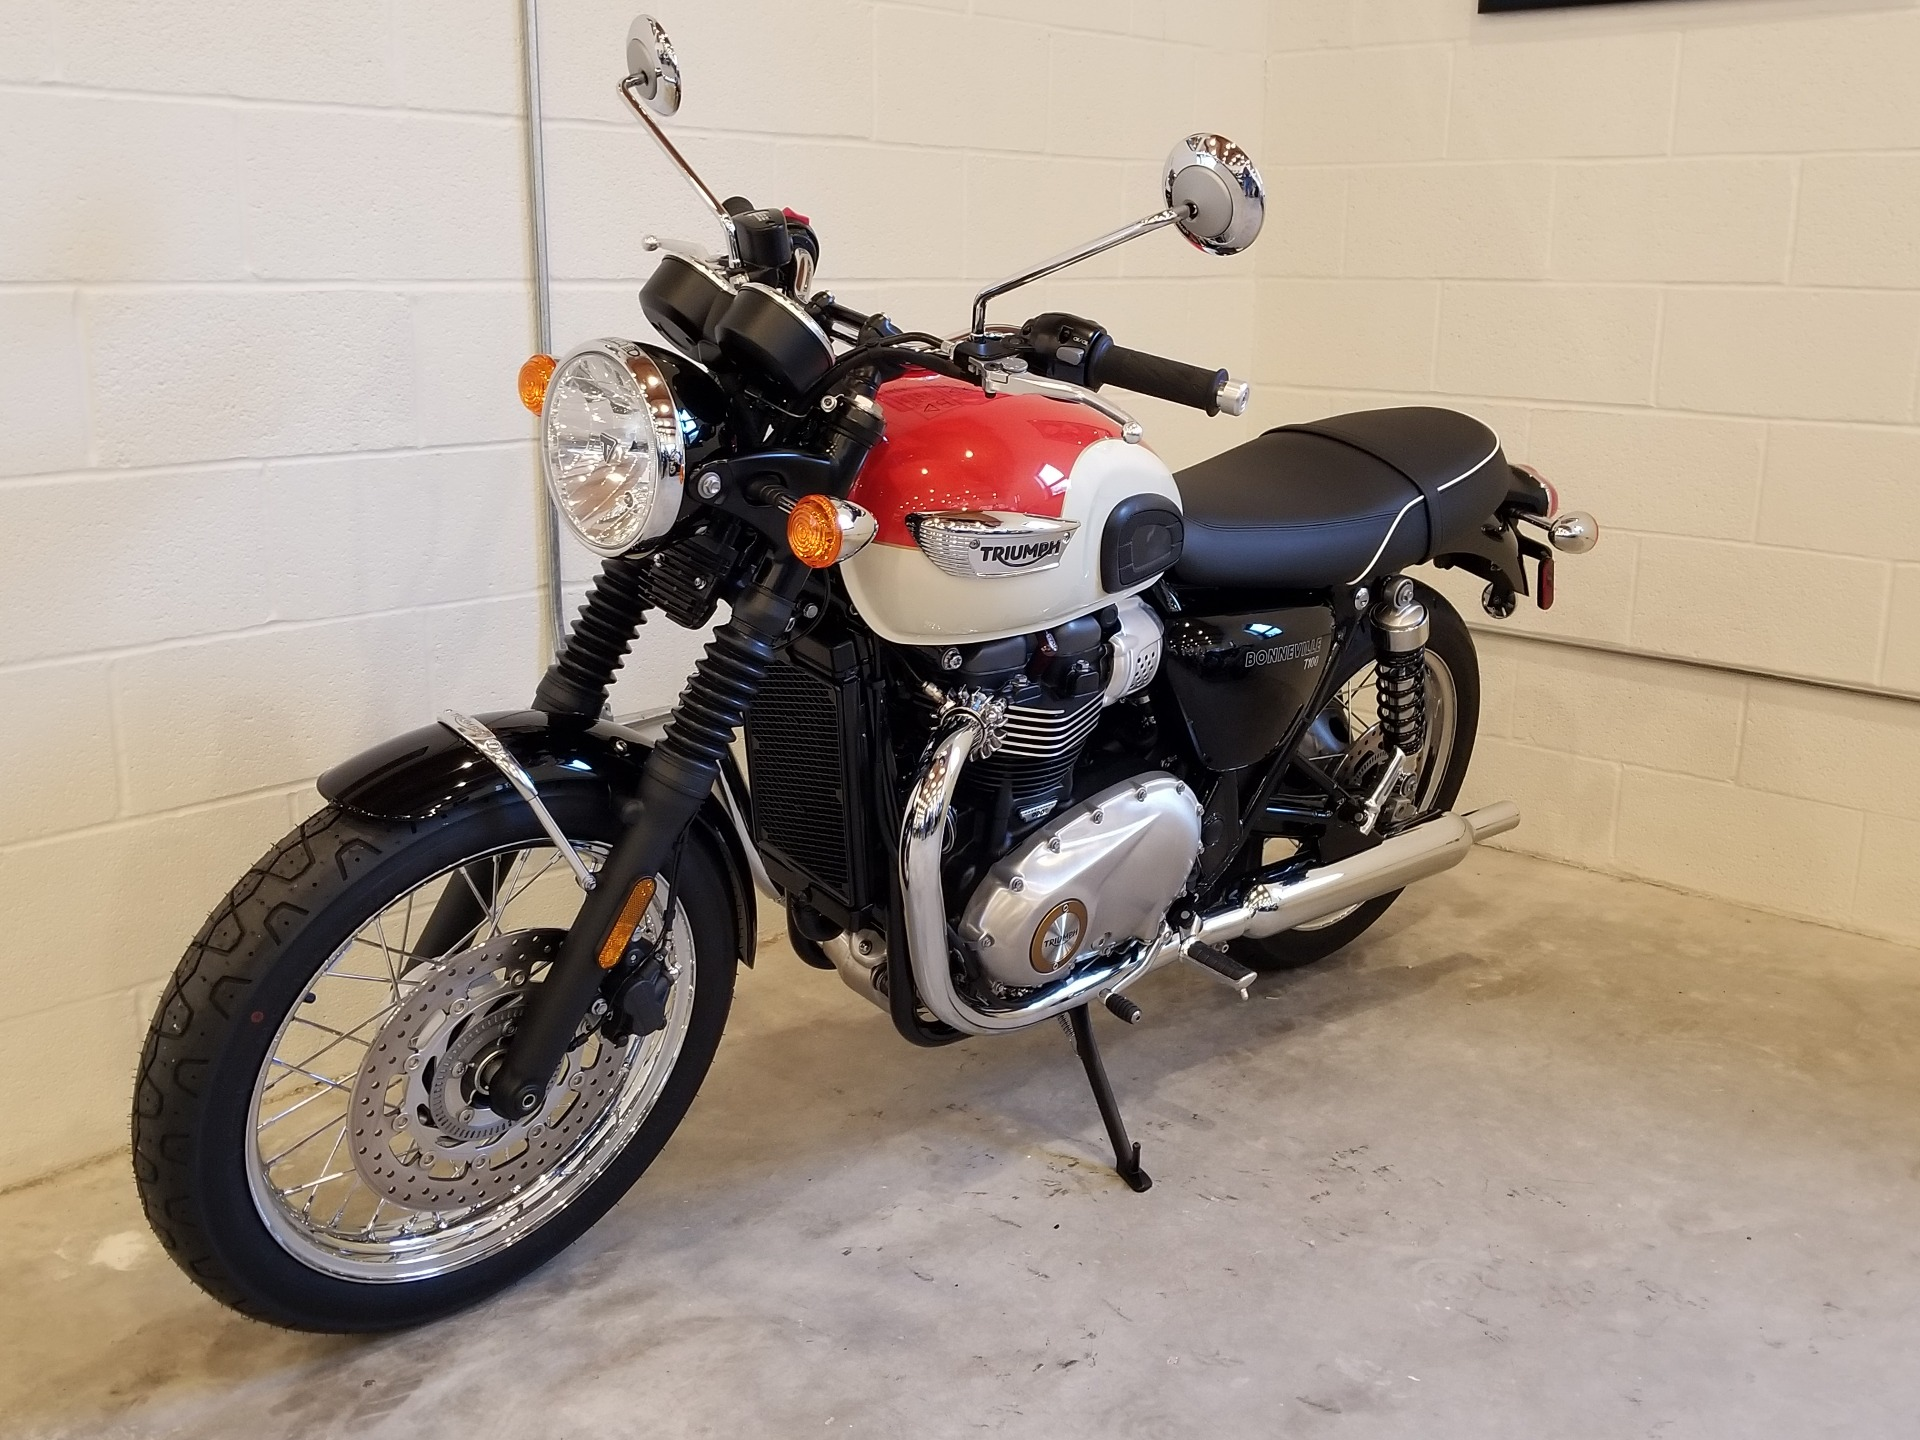 2019 Triumph Bonneville T100 in Port Clinton, Pennsylvania - Photo 5